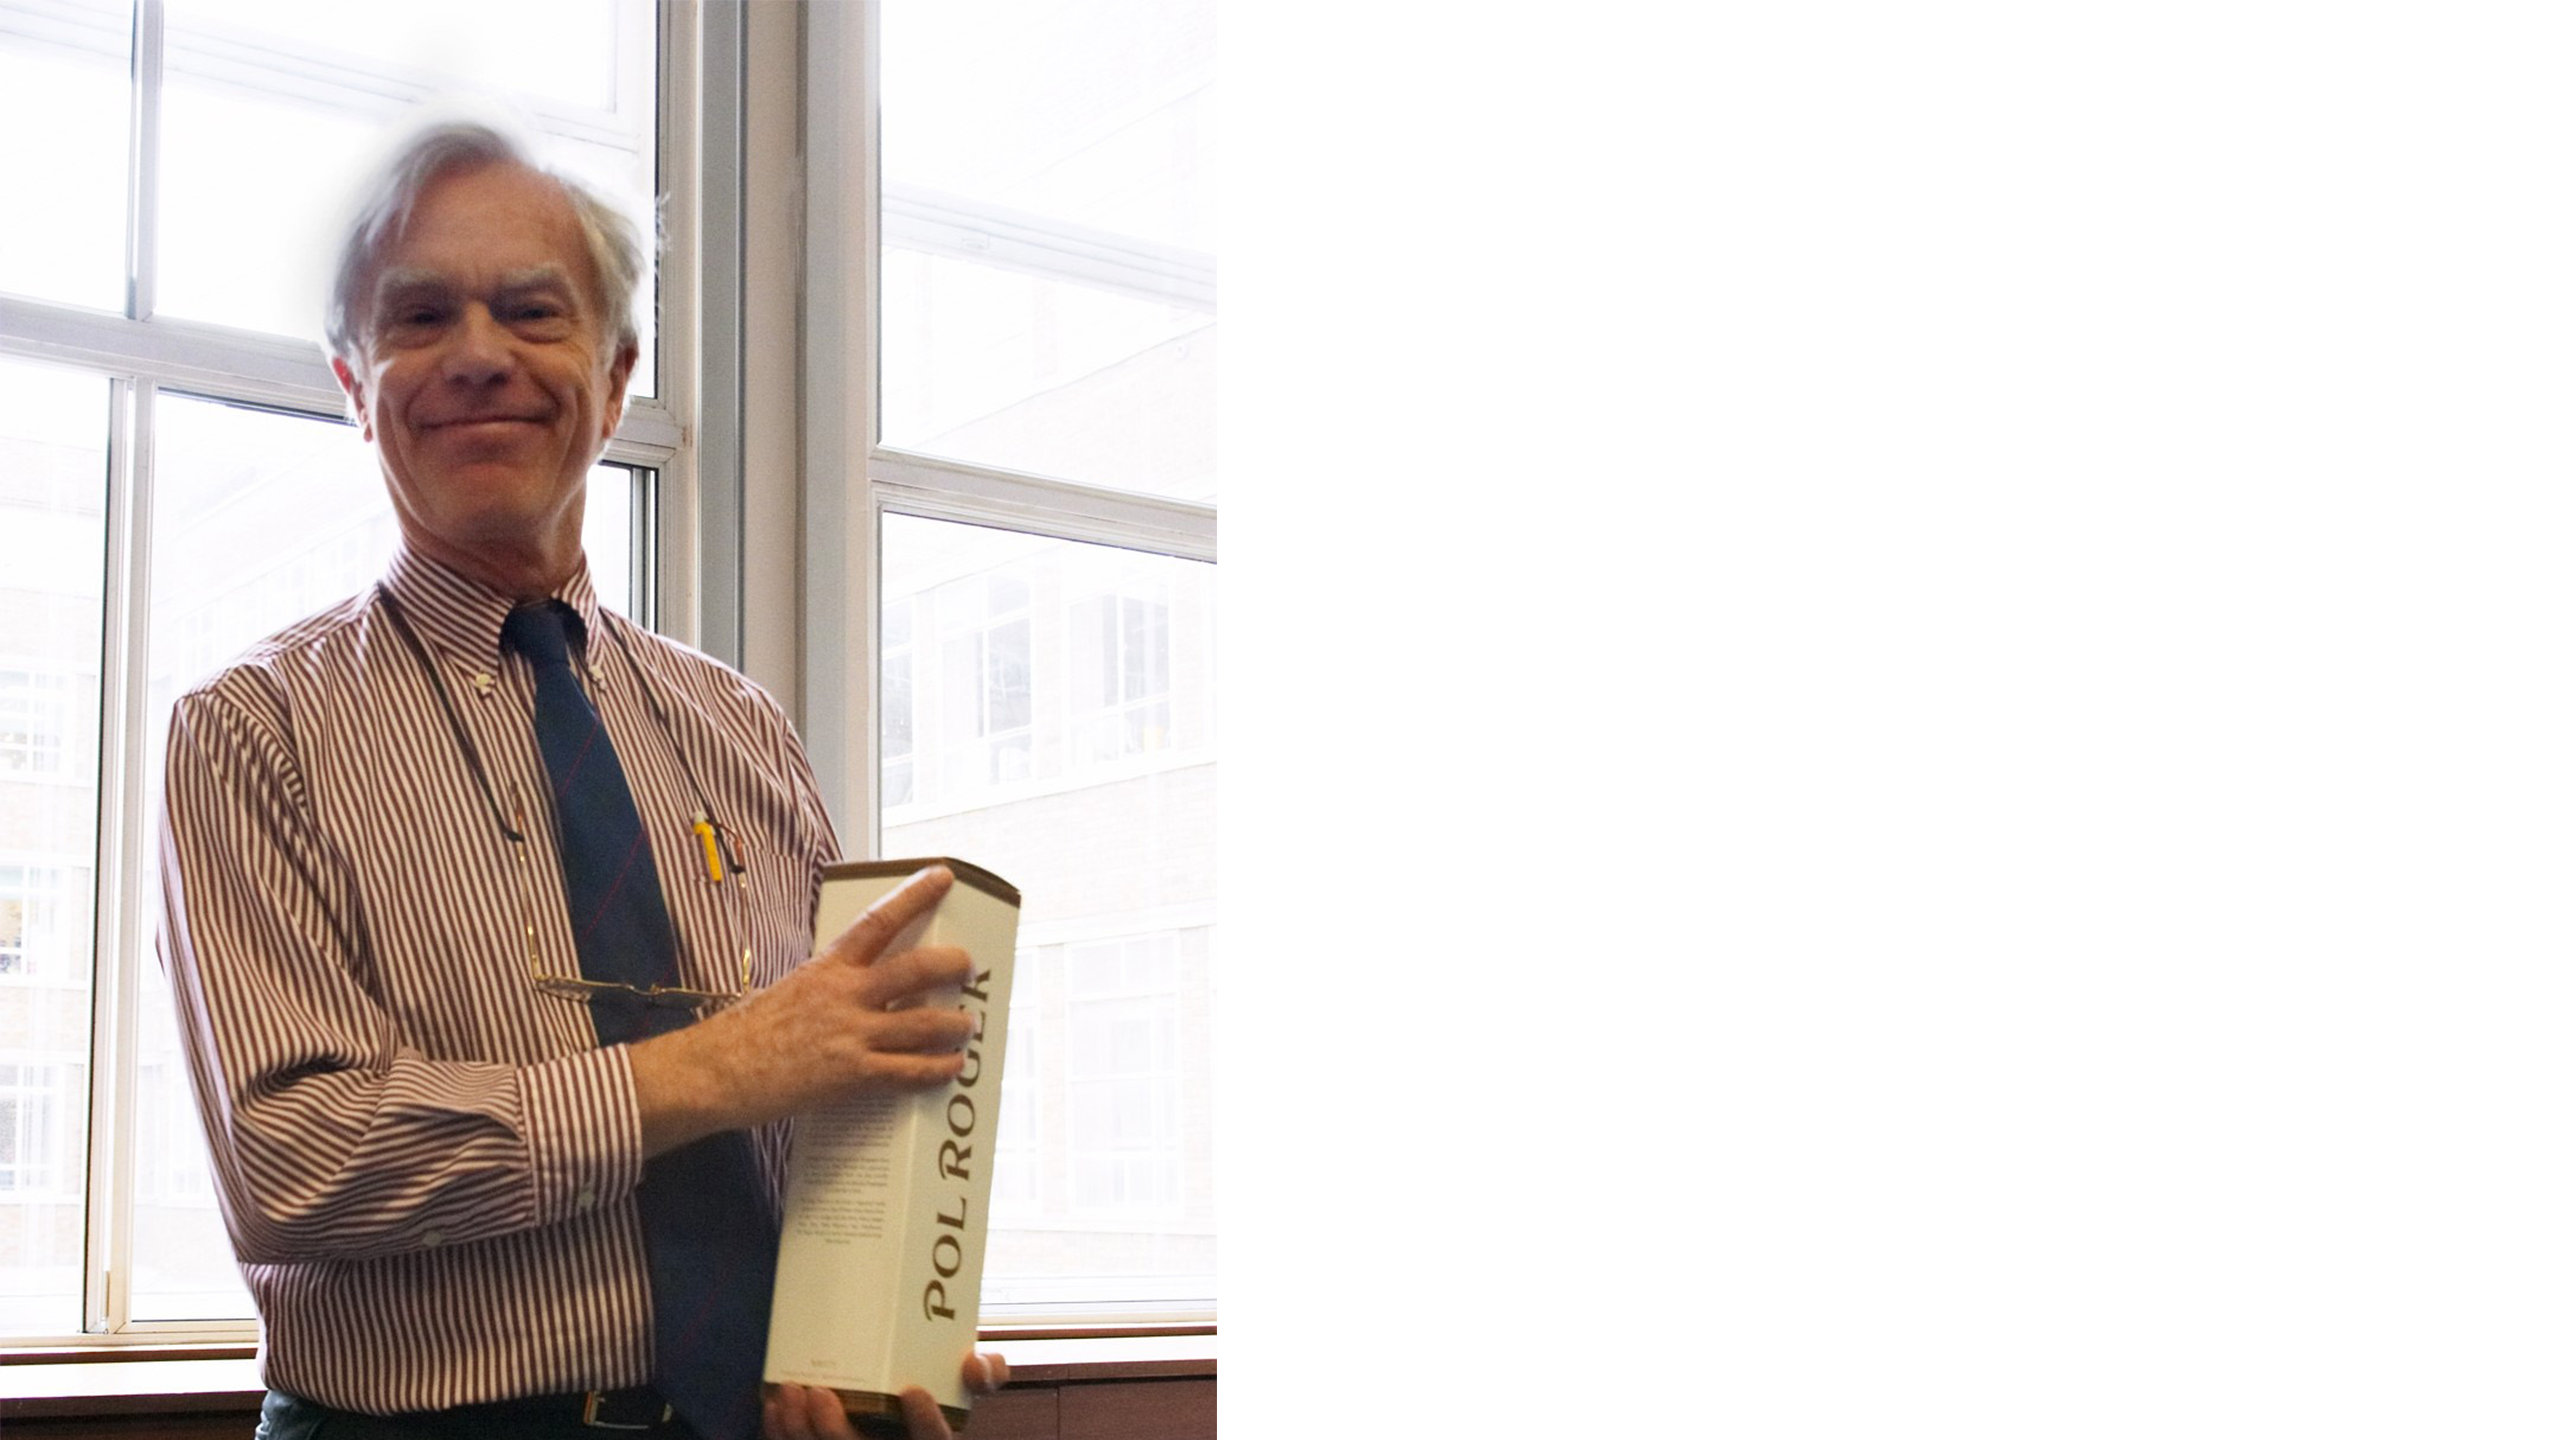 Professor John Bridgwater in a red and white vertical striped shirt holding a boxed bottle of Pol Roger champagne